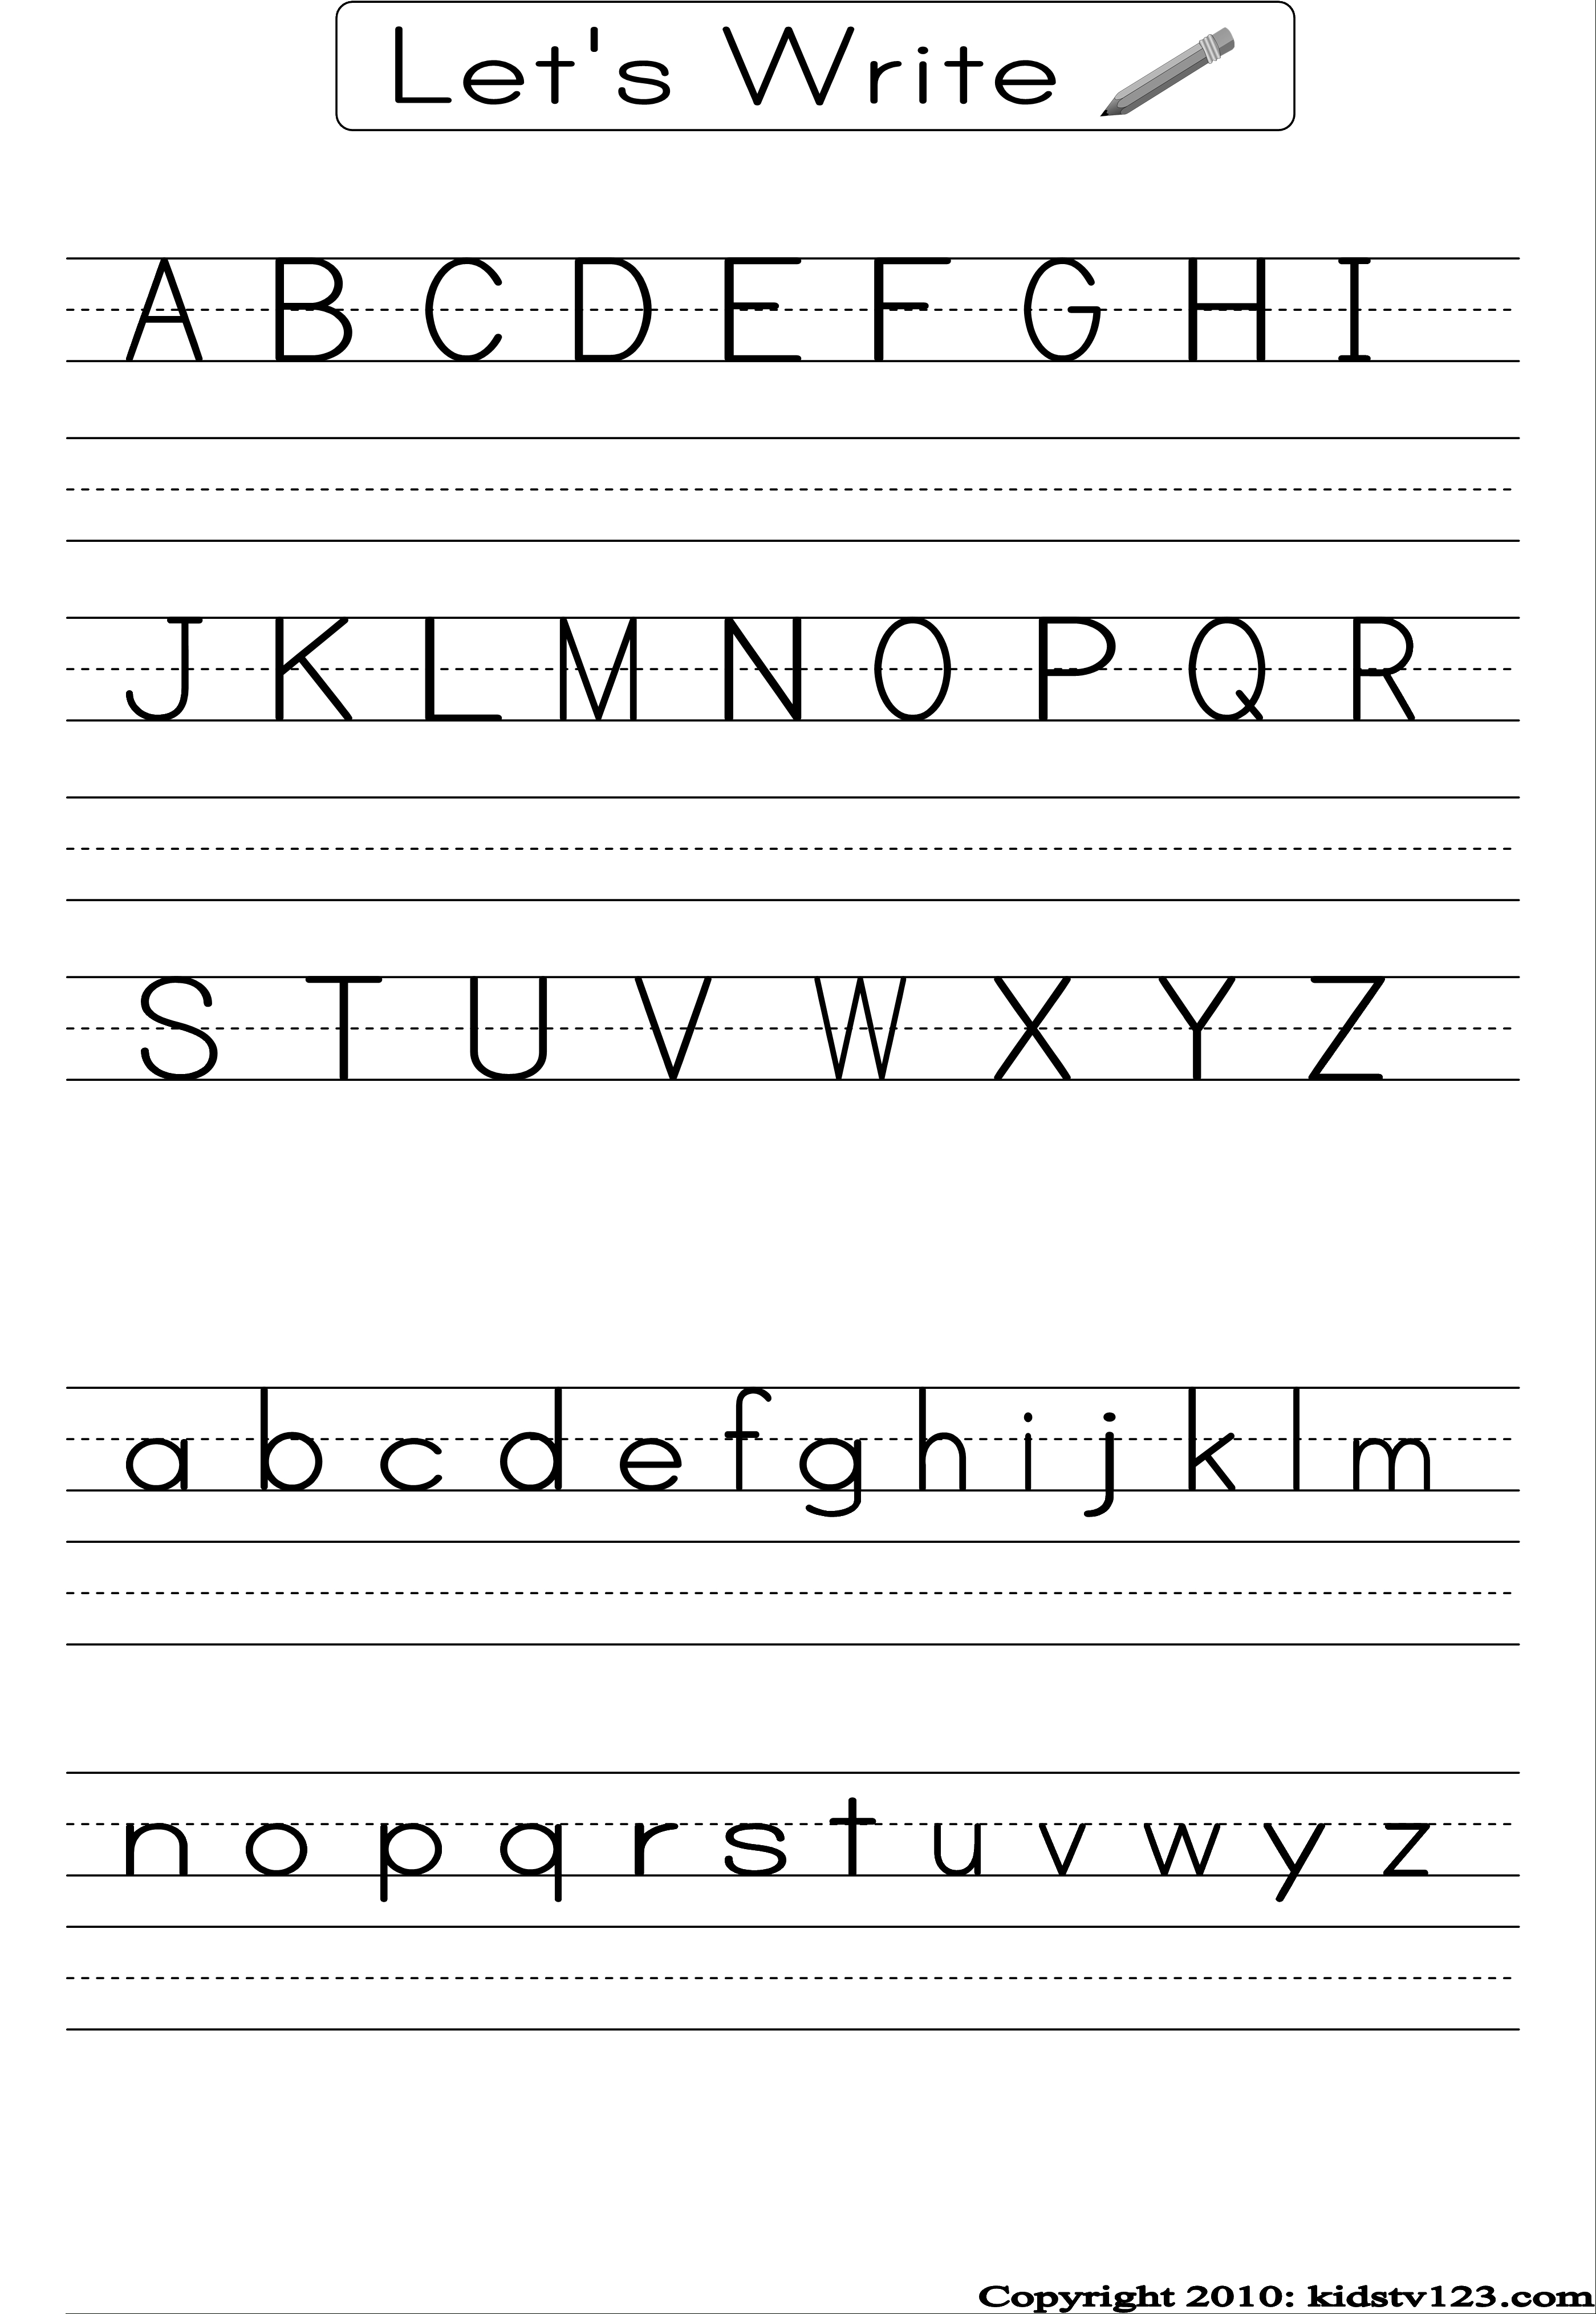 Alphabet Writing Practice Sheet | Edu-Fun | Alphabet Worksheets - Free Printable Handwriting Worksheets